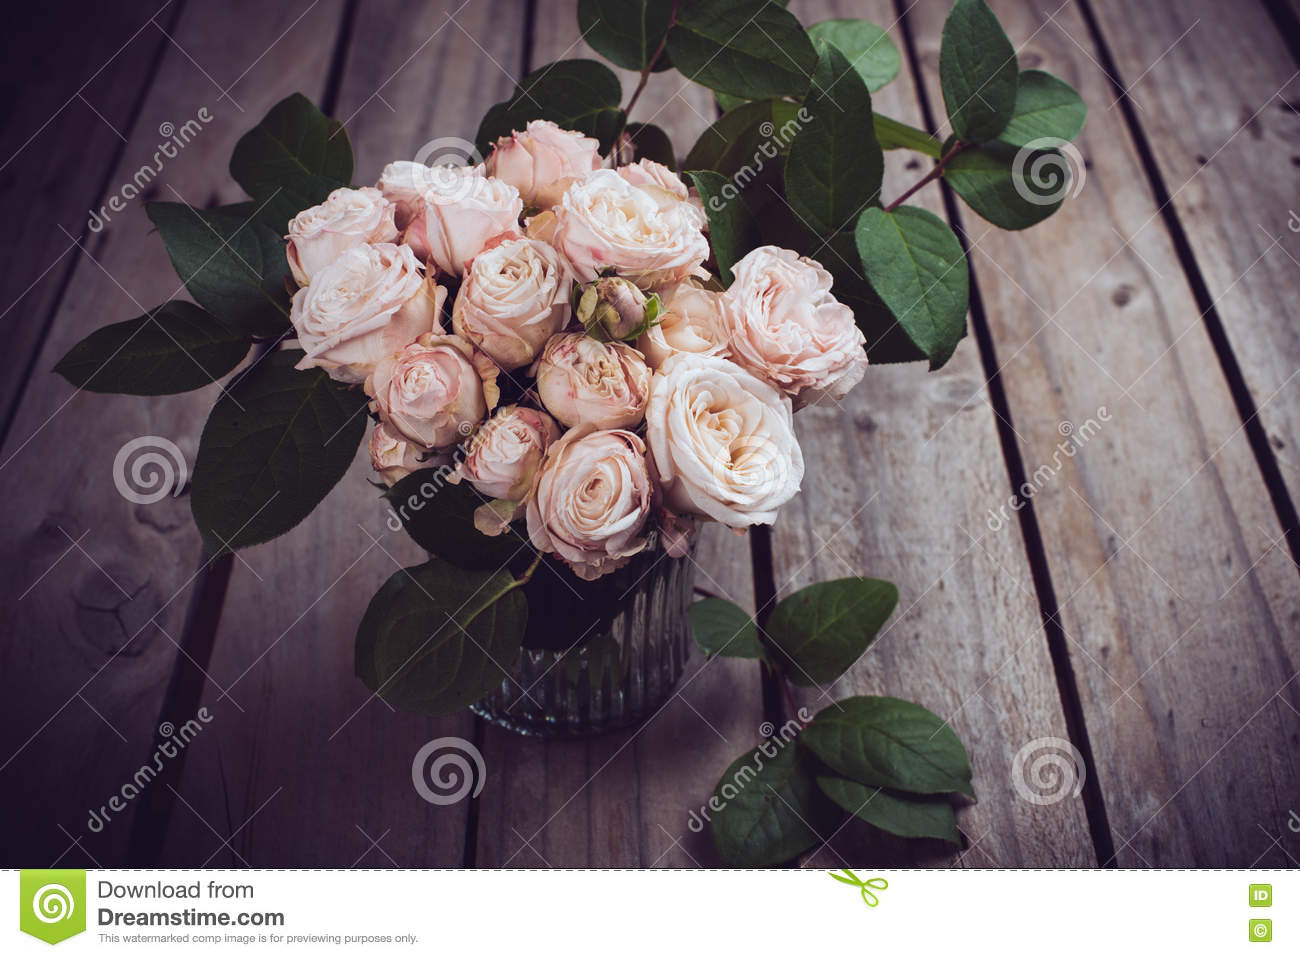 Beautiful vintage bouquet of fresh roses on wooden board